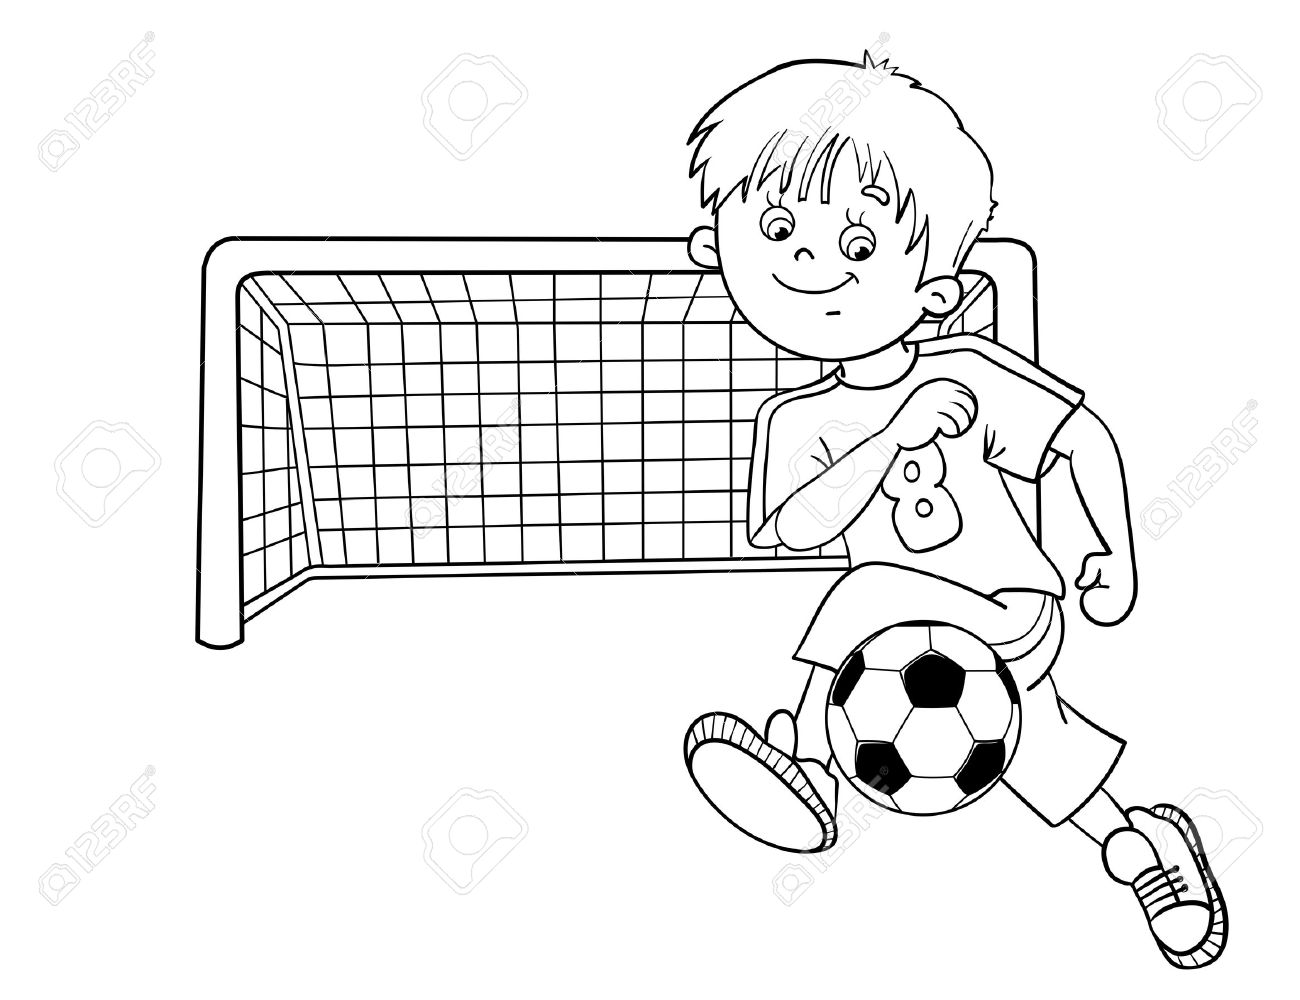 coloring page outline of a cartoon boy with a soccer ball and football goal stock vector